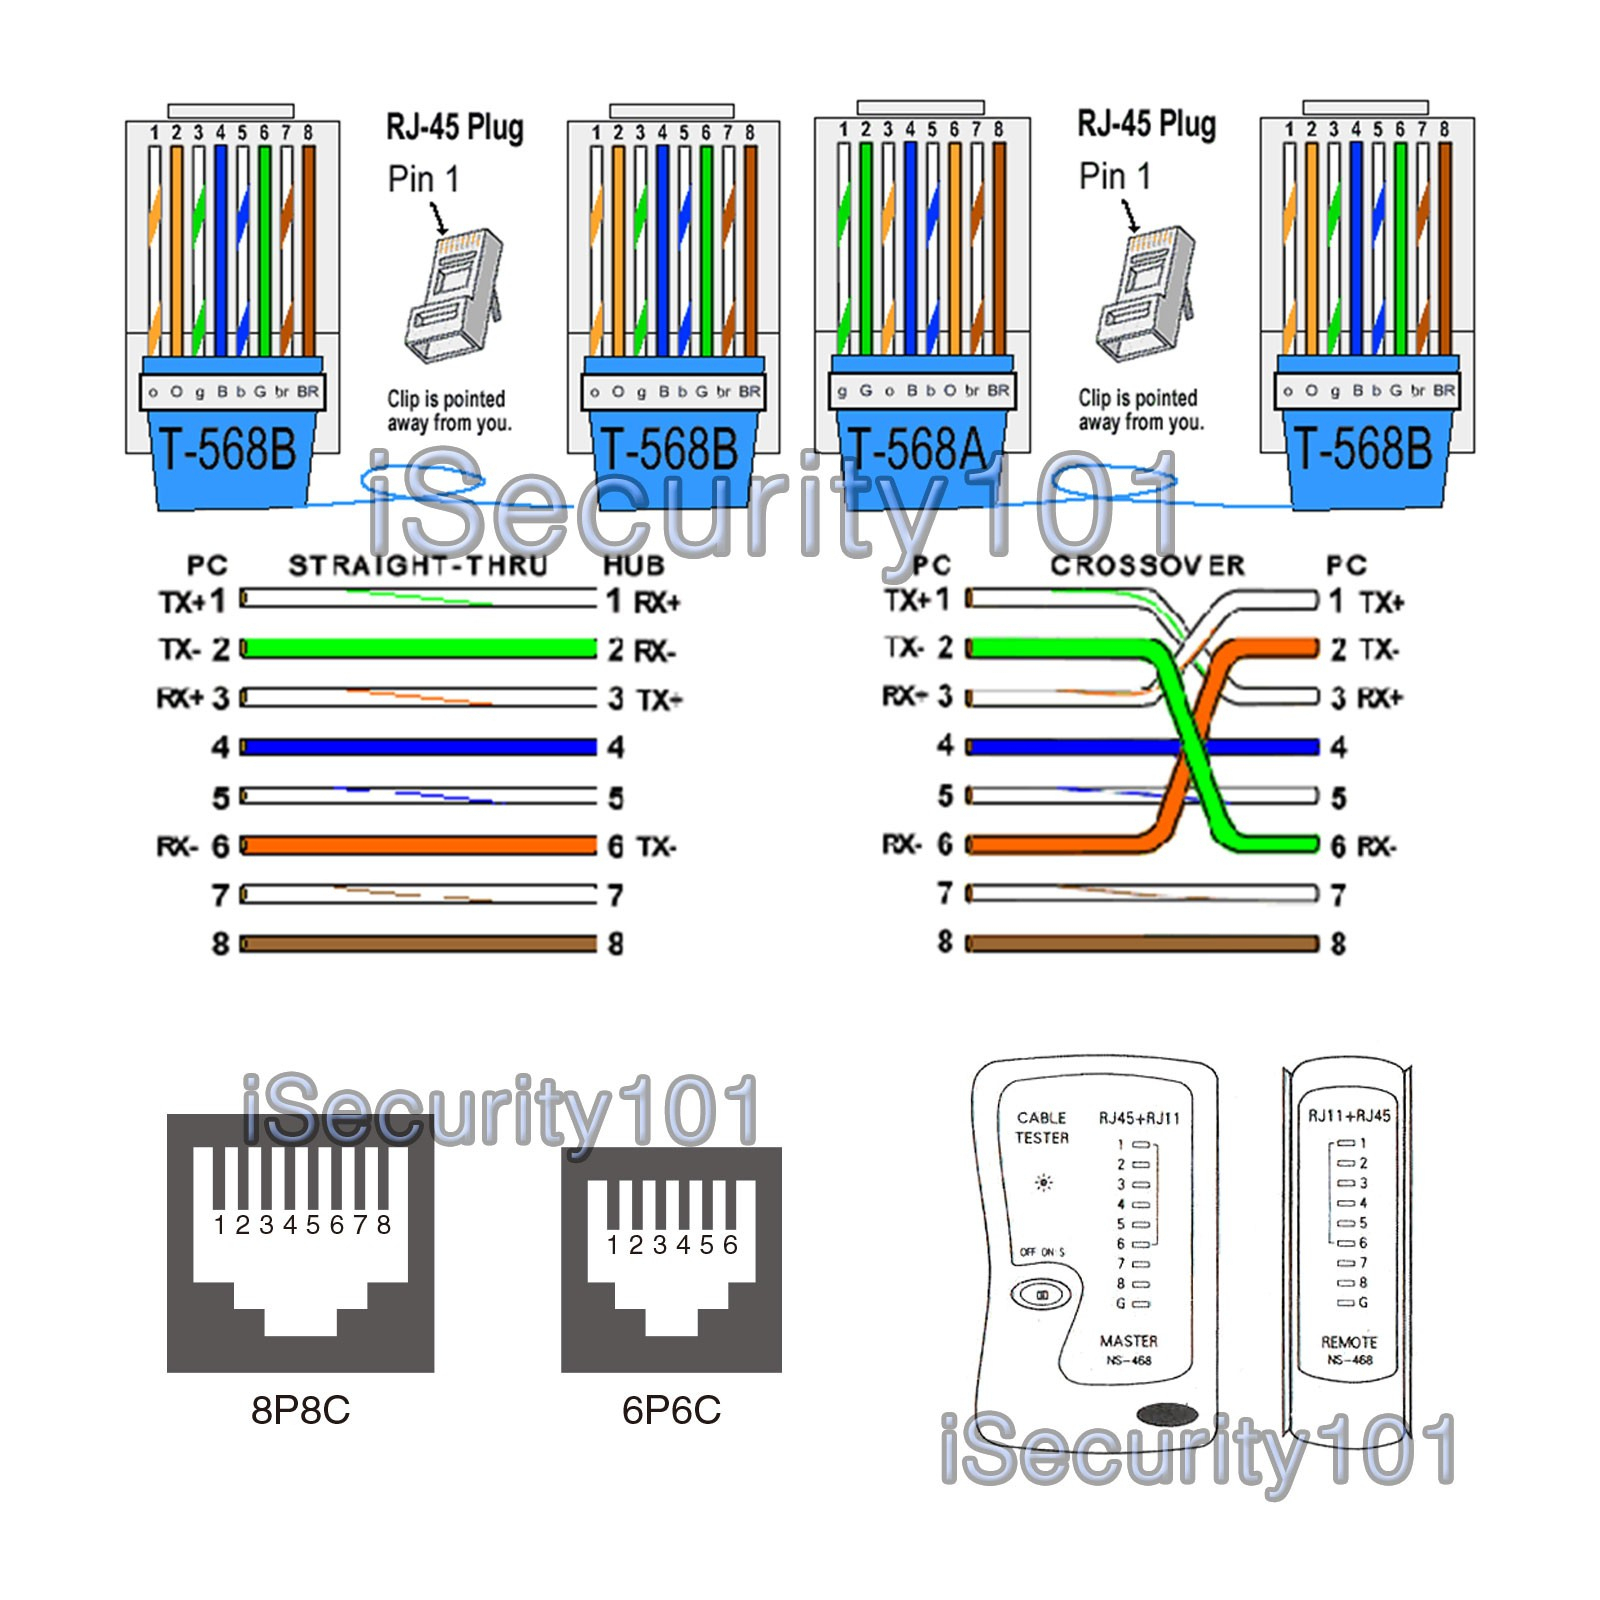 Female Rj45 Cat 5E Wiring Diagram | Wiring Diagram - Cat 5 568B - 568 B Wiring Diagram